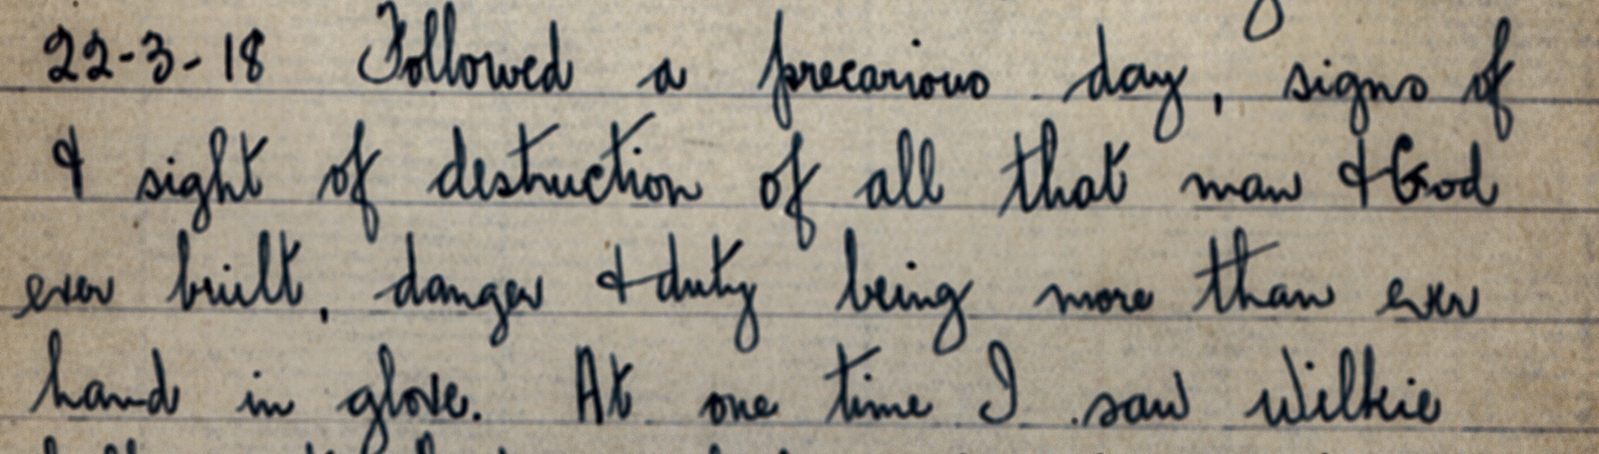 Remembrance: Will Popham's diary